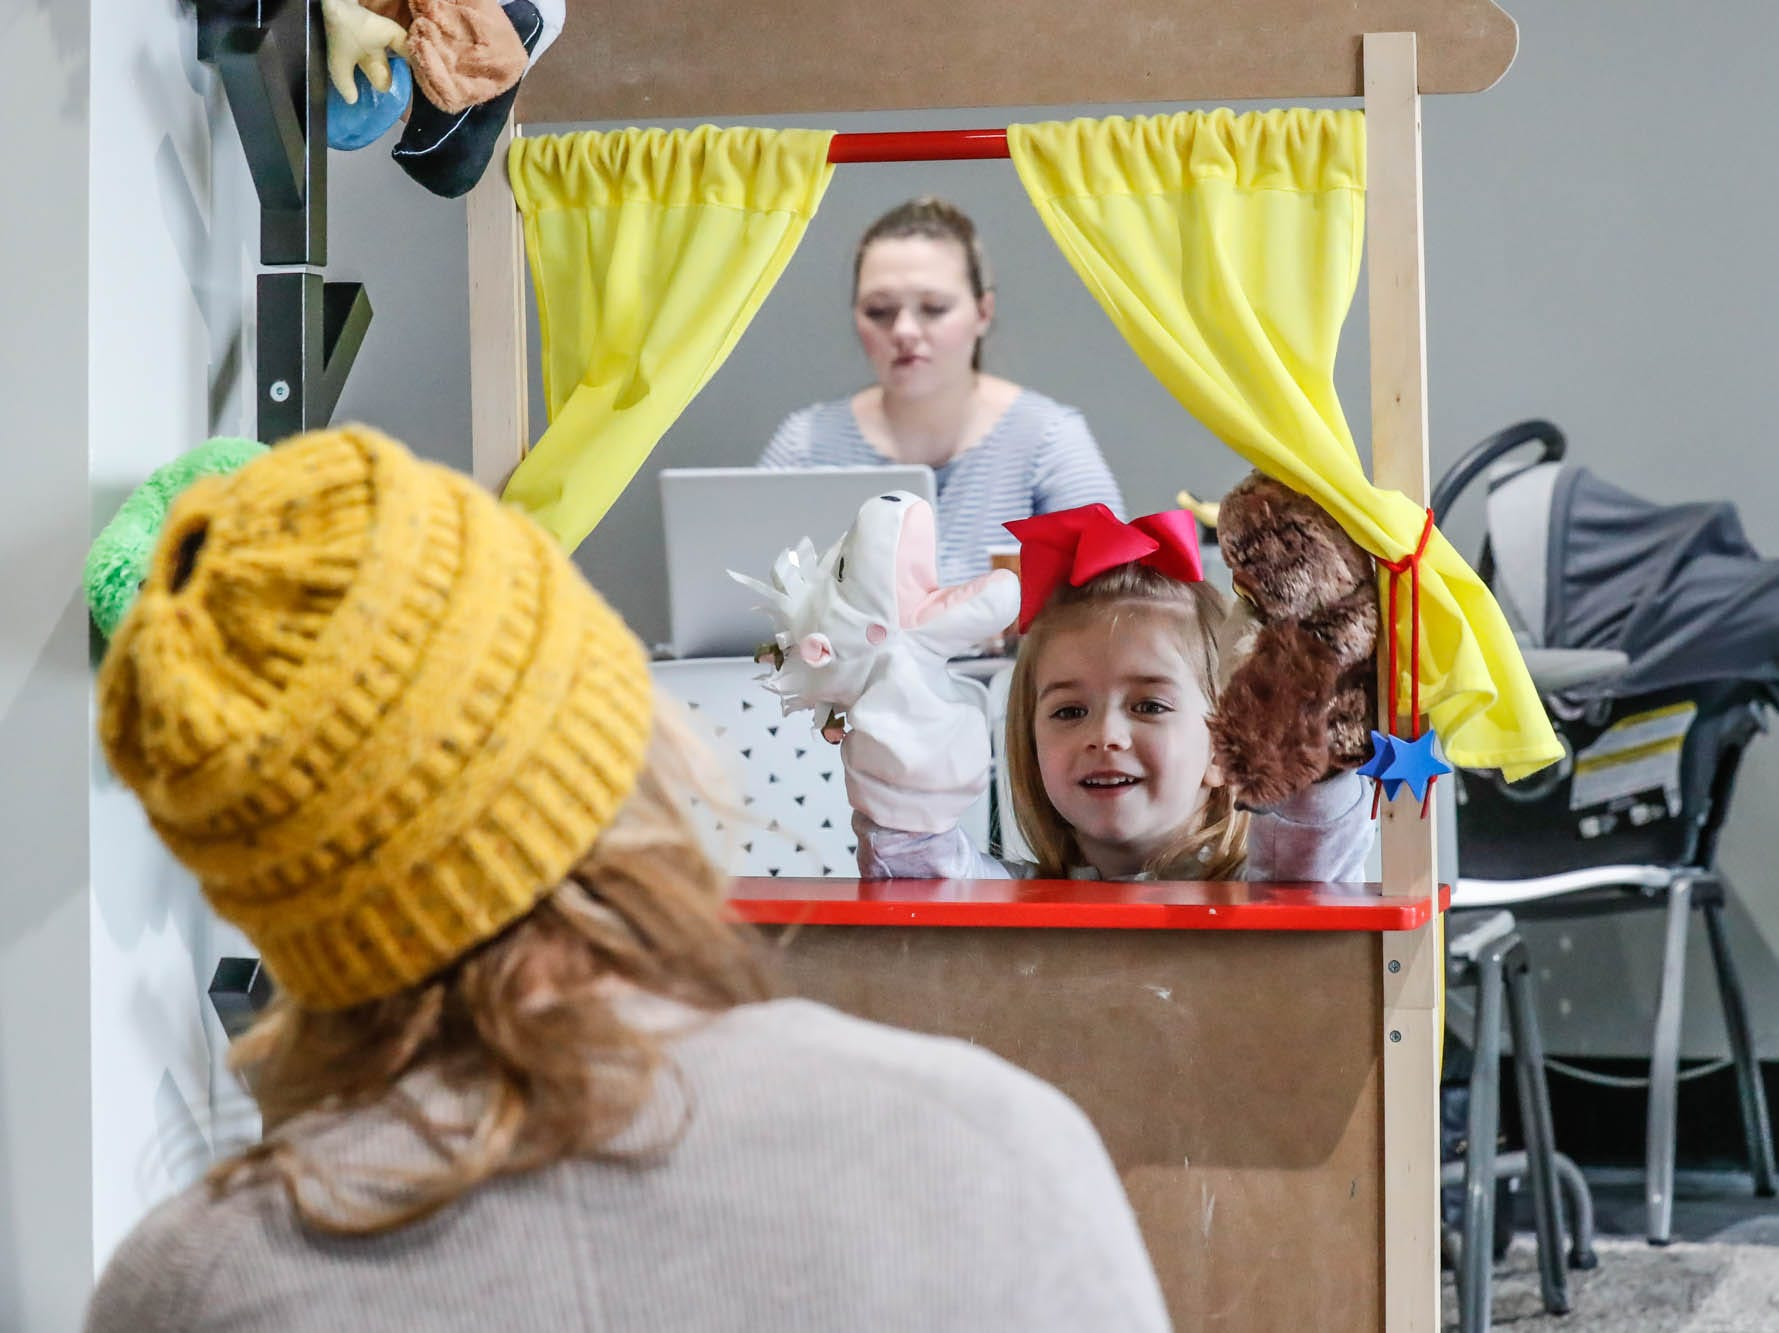 Ali Coulom, left, and her daughter Leslie Coulom play with a puppet theatre at The Little Village Playroom, 9850 N. Michigan Rd, Carmel, Ind., on Tuesday, Feb. 5, 2019. Behind, Mom Emelie Russell works on her computer while watching her child.